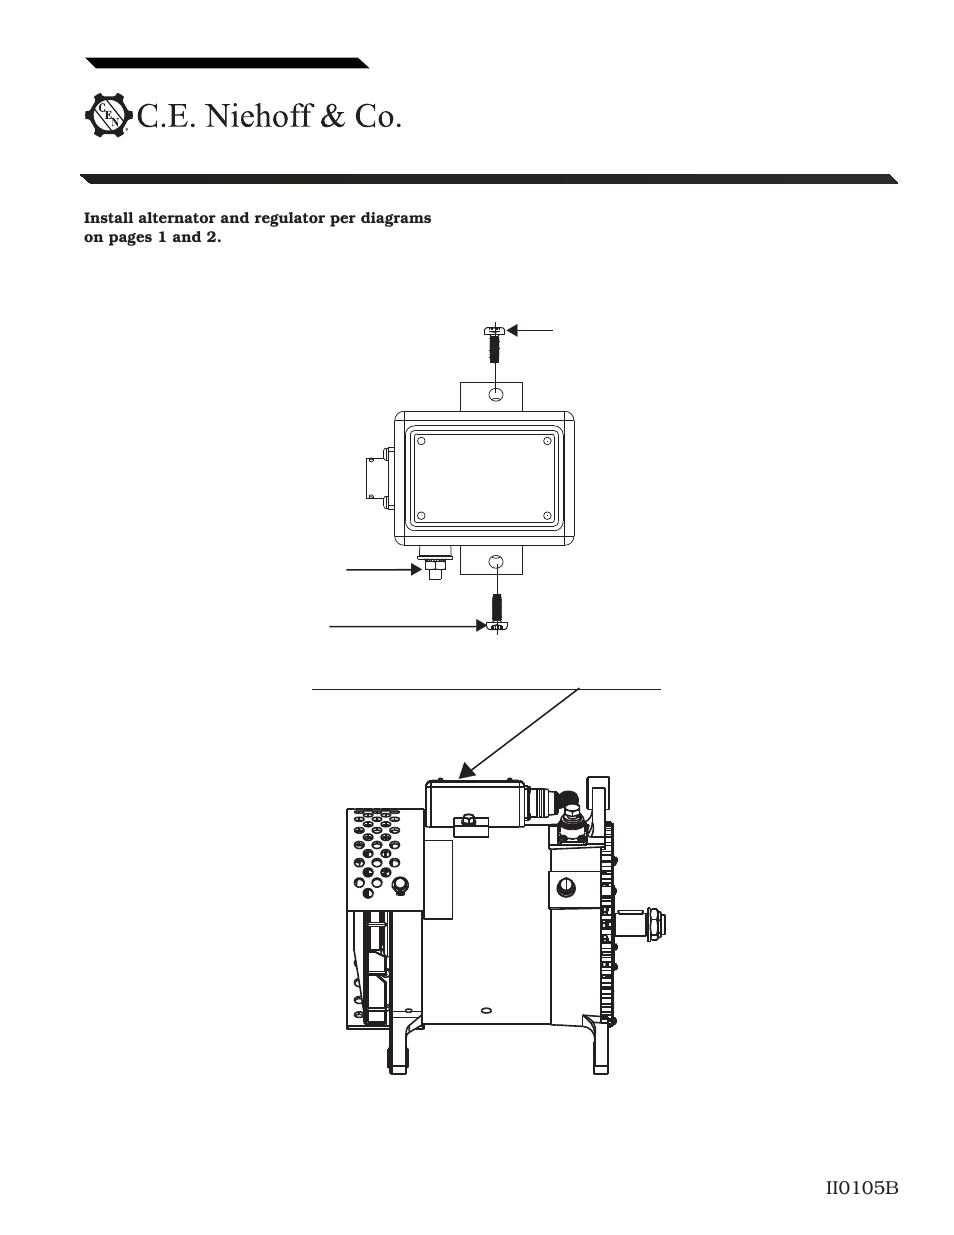 External Regulated Alternator Wiring Page1 Manual Guide